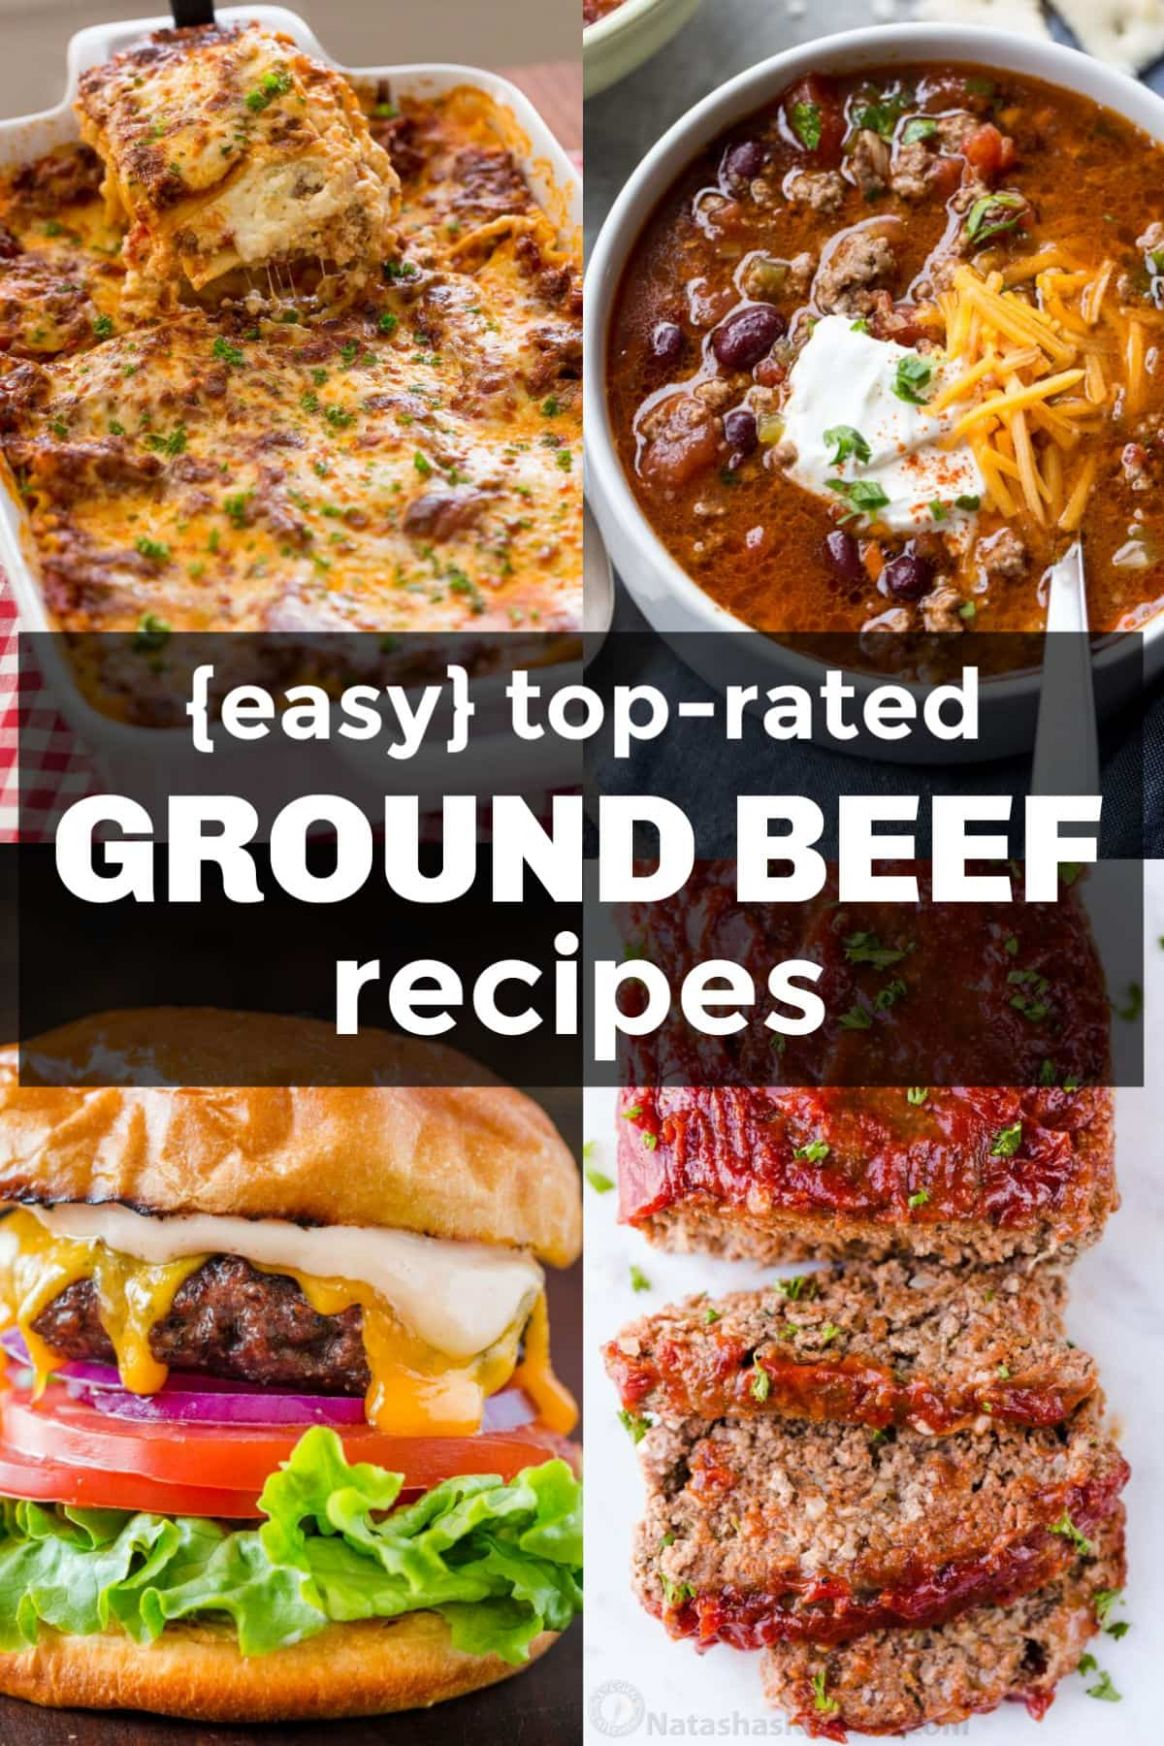 How to Cook Ground Beef for Ground Beef Recipes - Dinner Recipes Hamburger